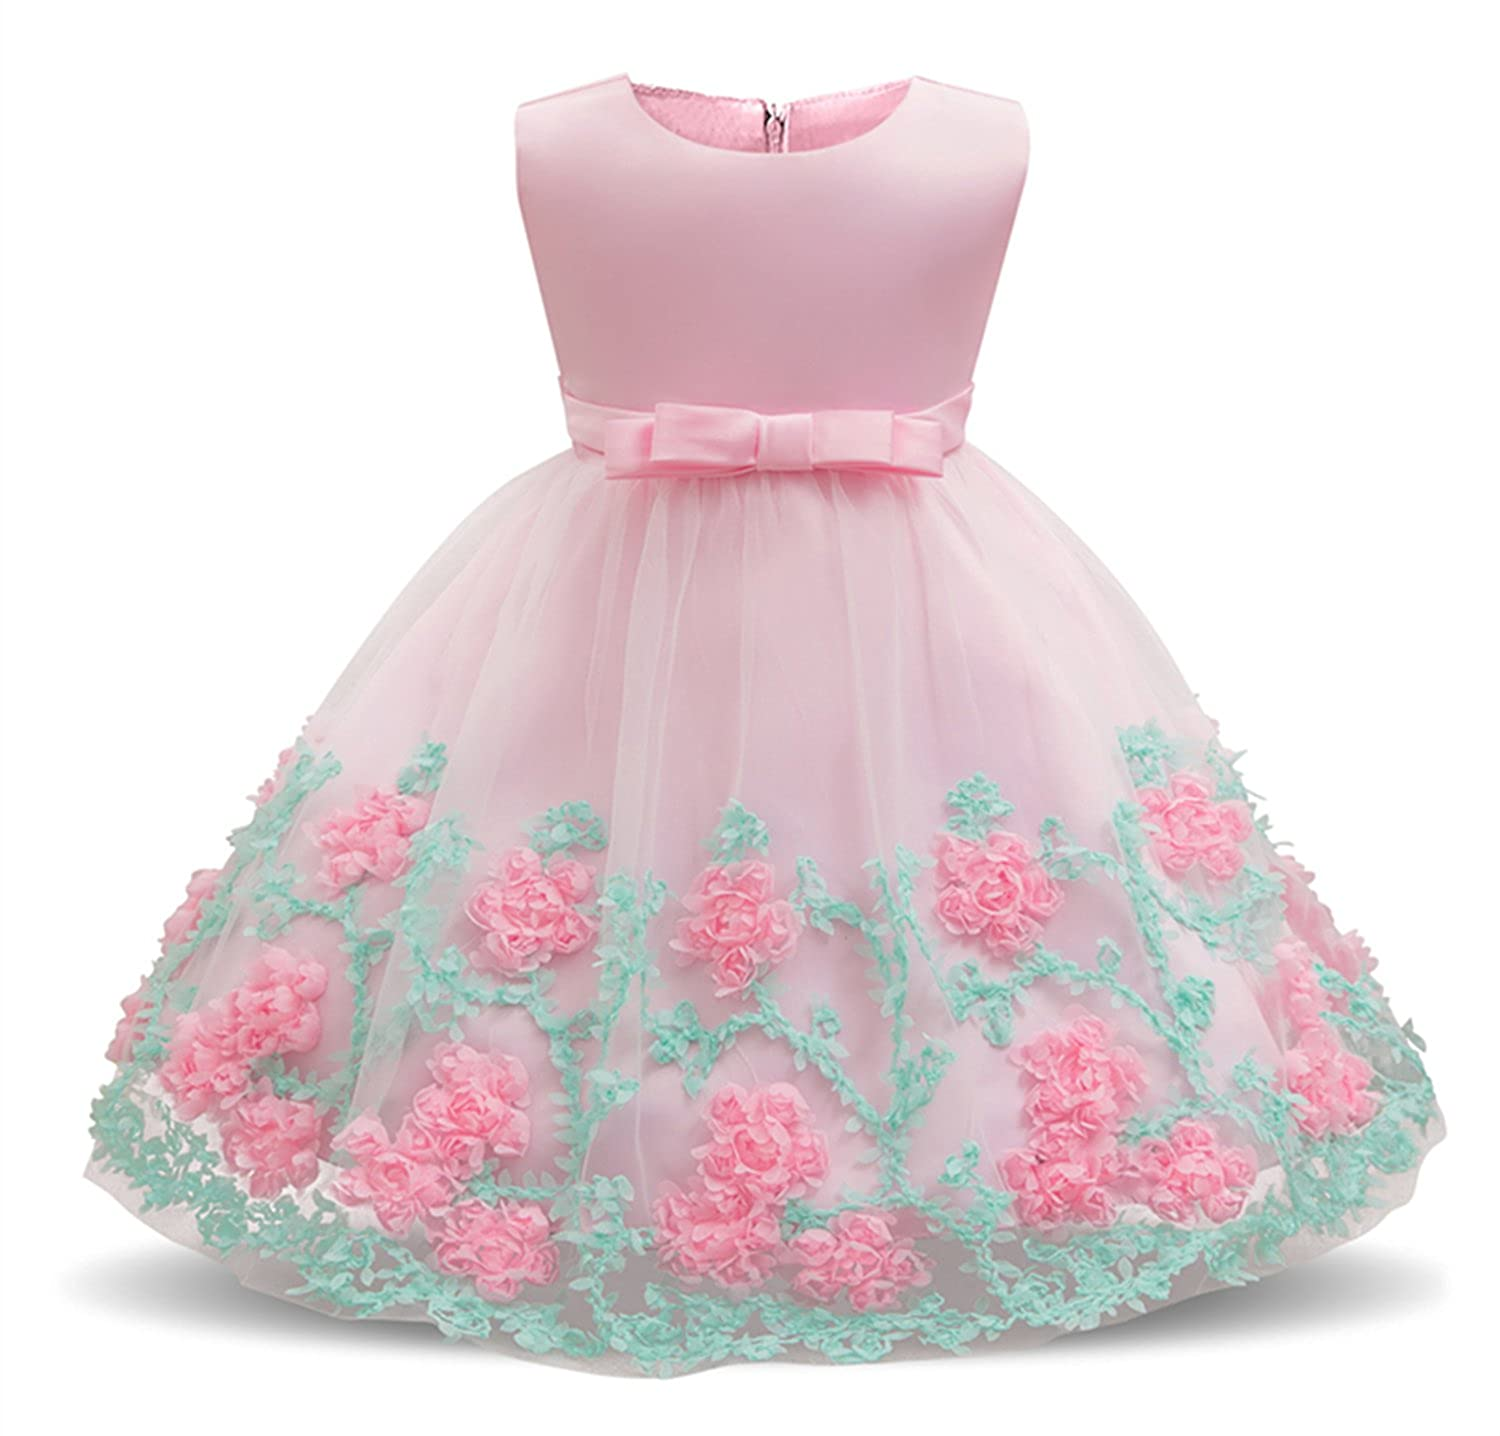 Dhiuow Baby Girl Flower Wedding Dresses Tulle Birthday Party Pageant Dress Age 0-24M